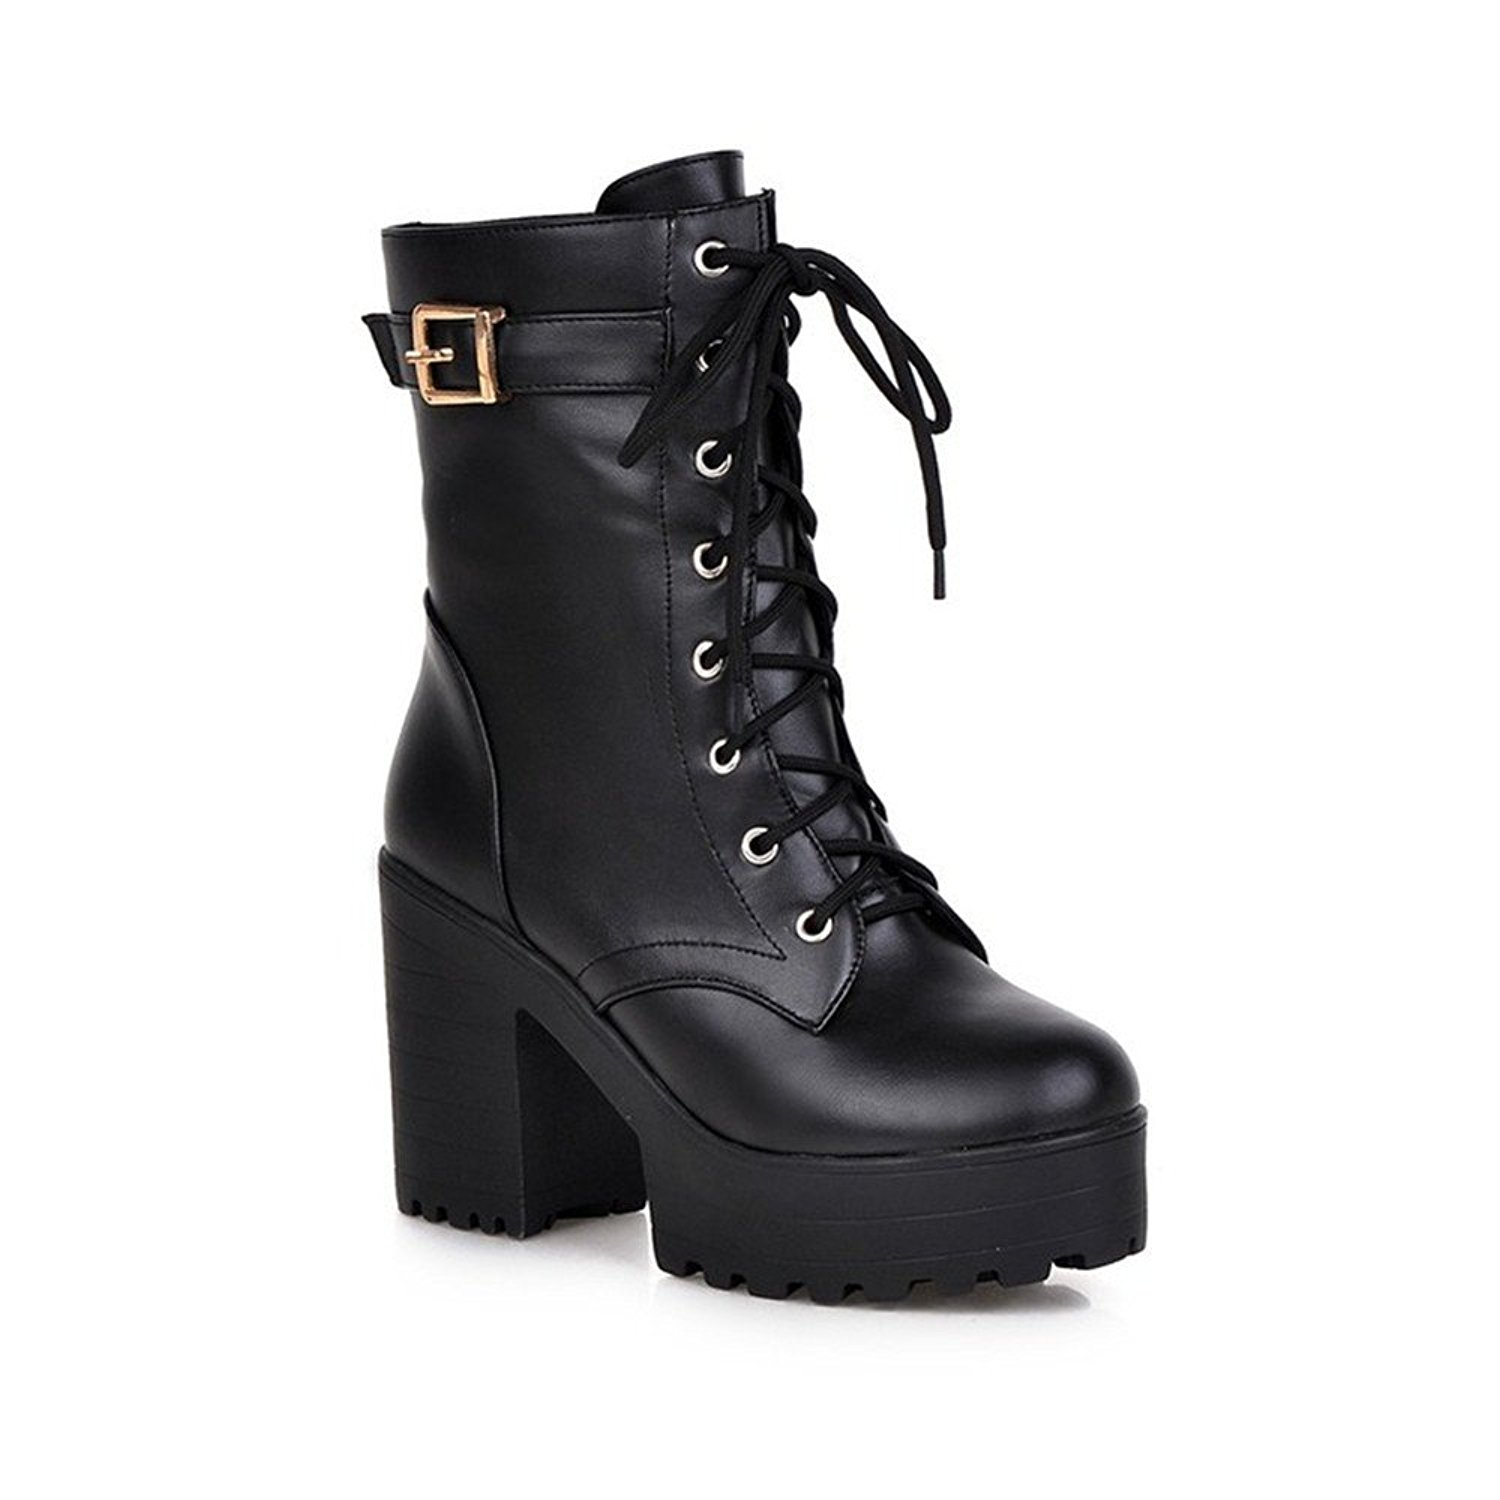 5b3620eb614 Get Quotations · Qiangsoo Women s Lace-up Buckle Boots Combat Platform  Chunky Heel Martin Boots